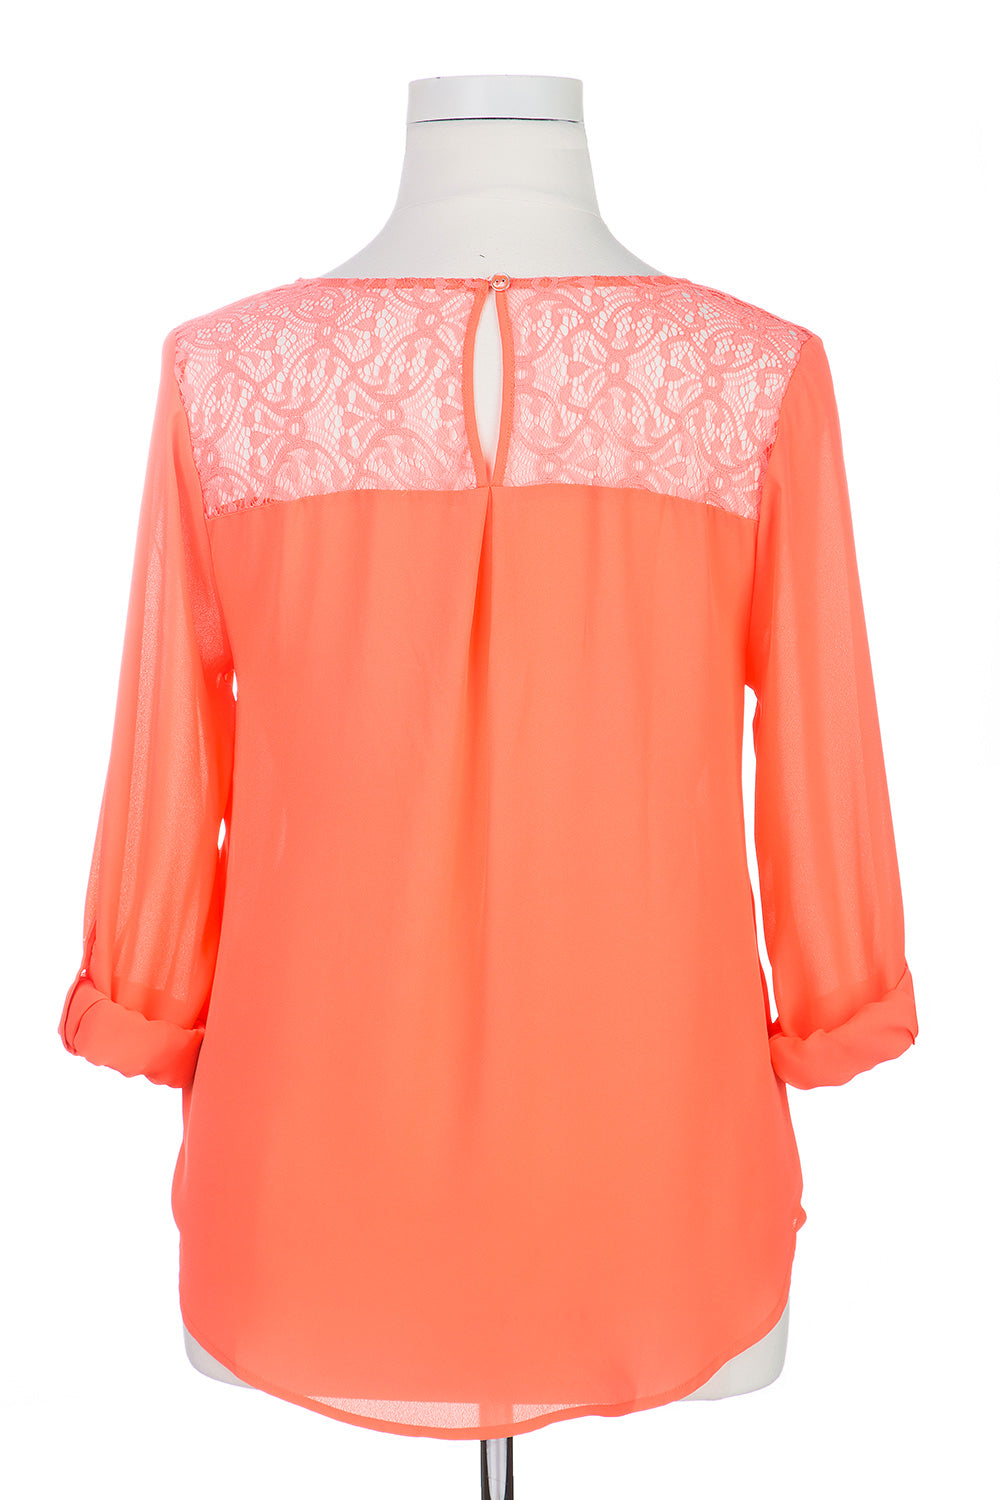 Type 1 You are Beautiful Top in Coral